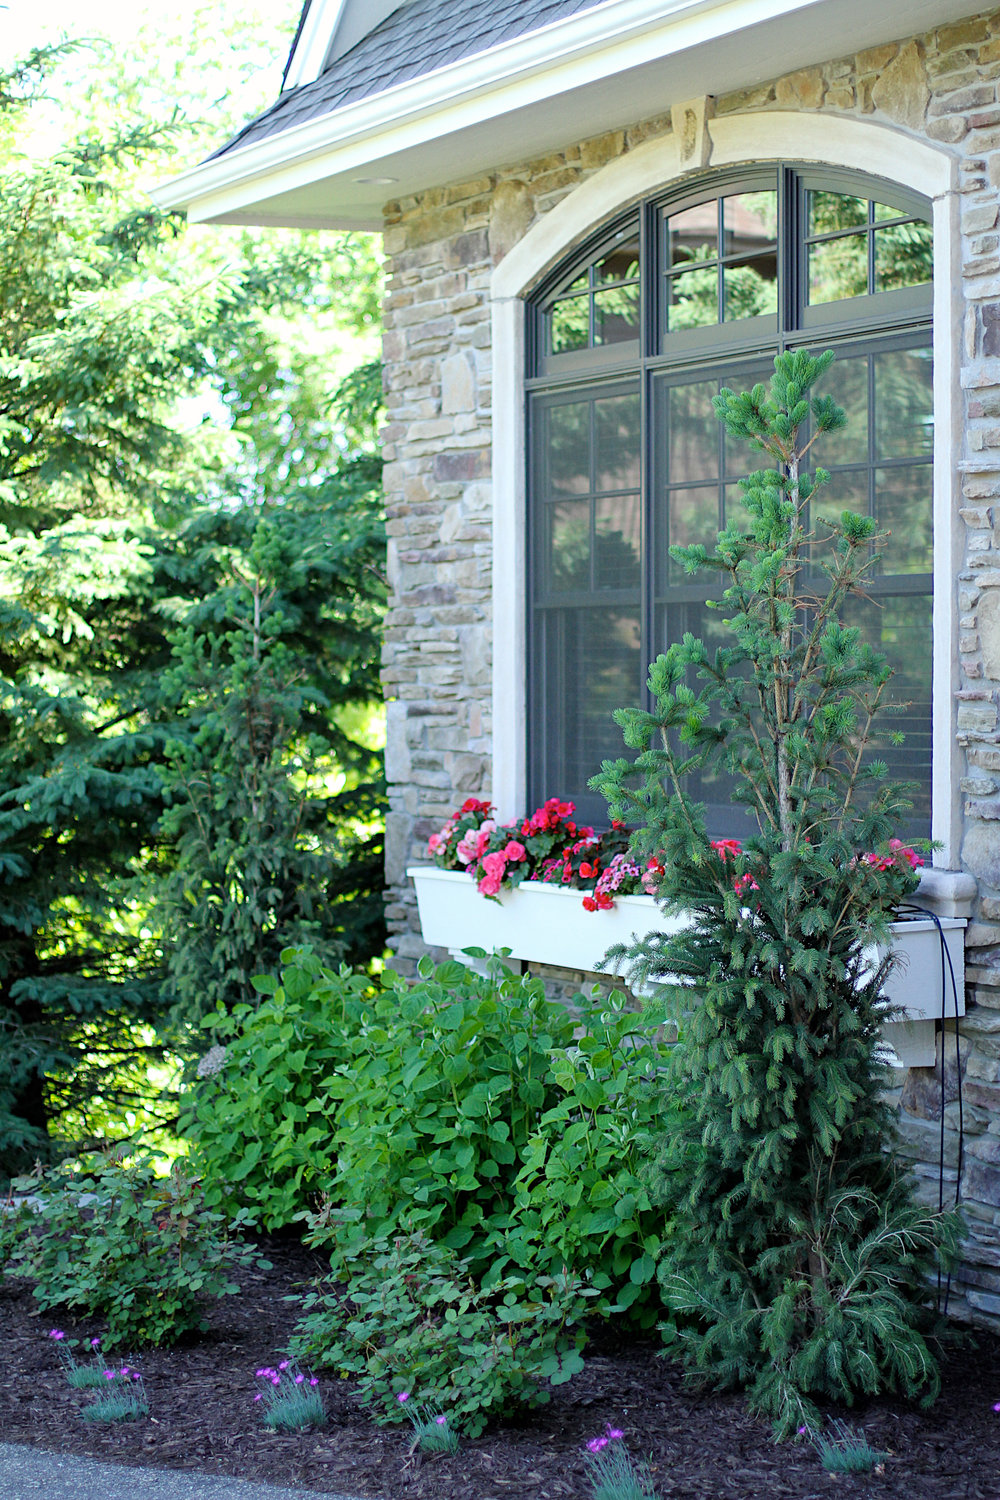 Finding the right greens to use for curb appeal can beautify any home.